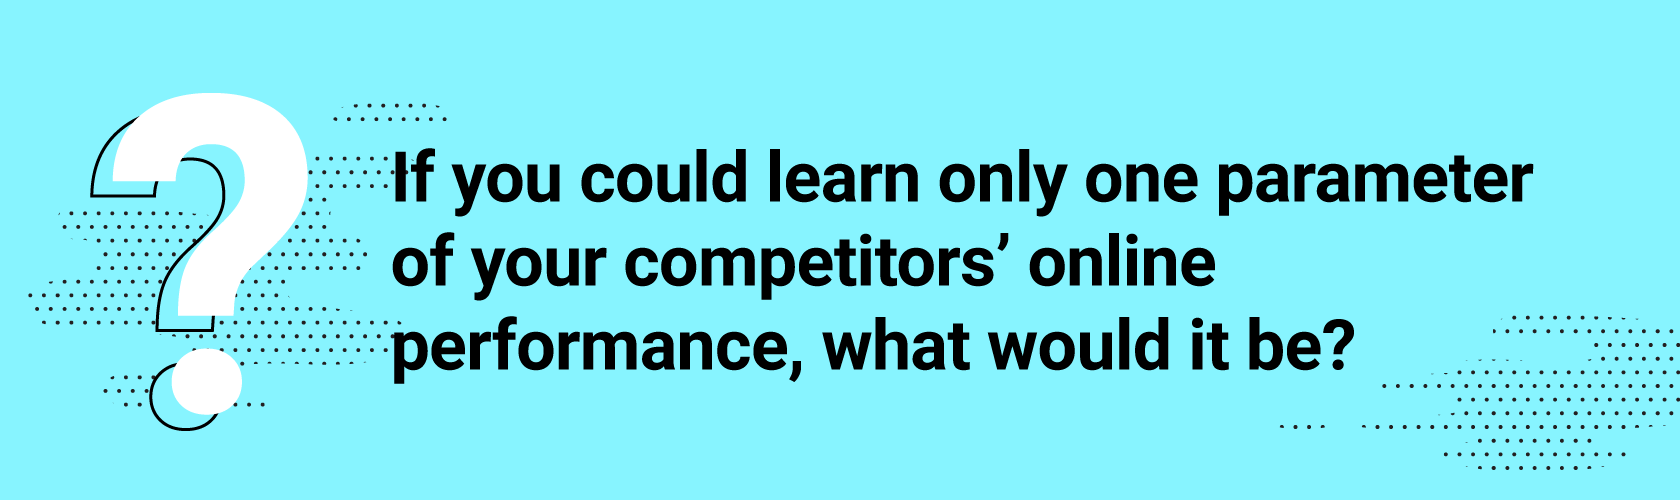 If you could learn only one parameter of your competitors' online performance, what would it be?